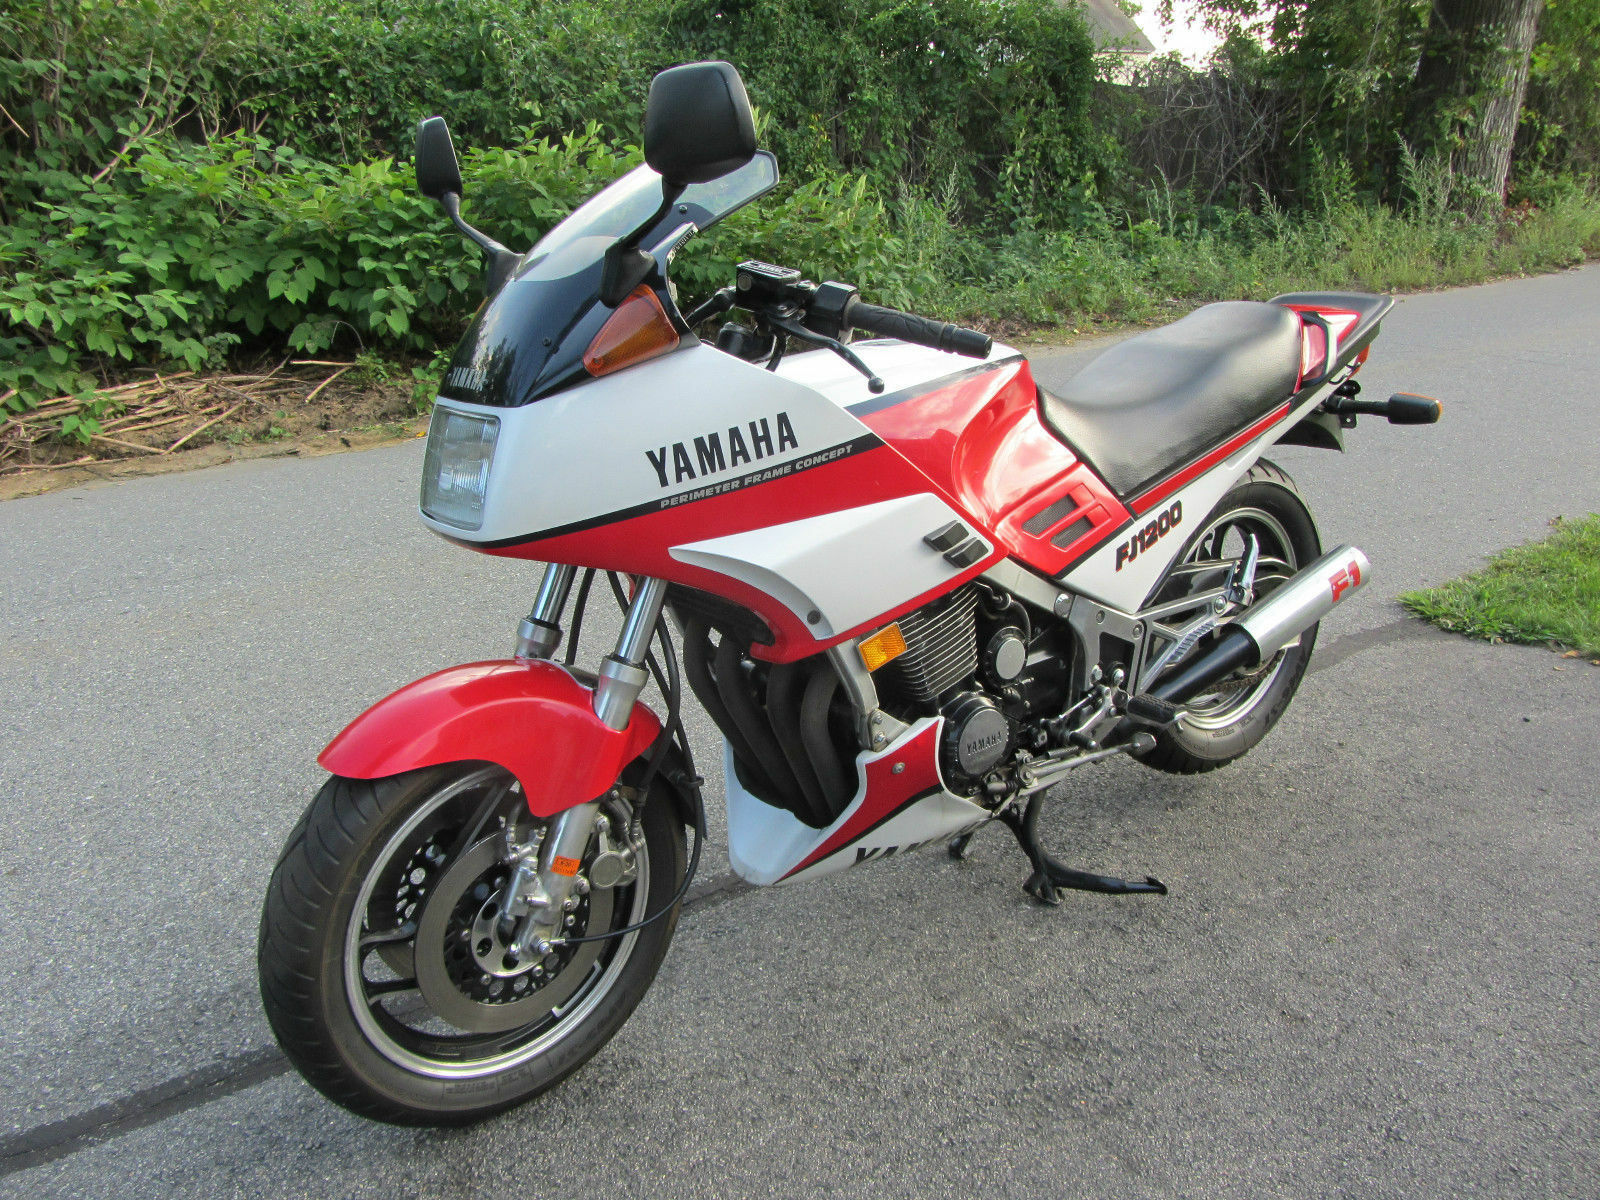 yamaha motorcycle wheels and rims buying guide ebay